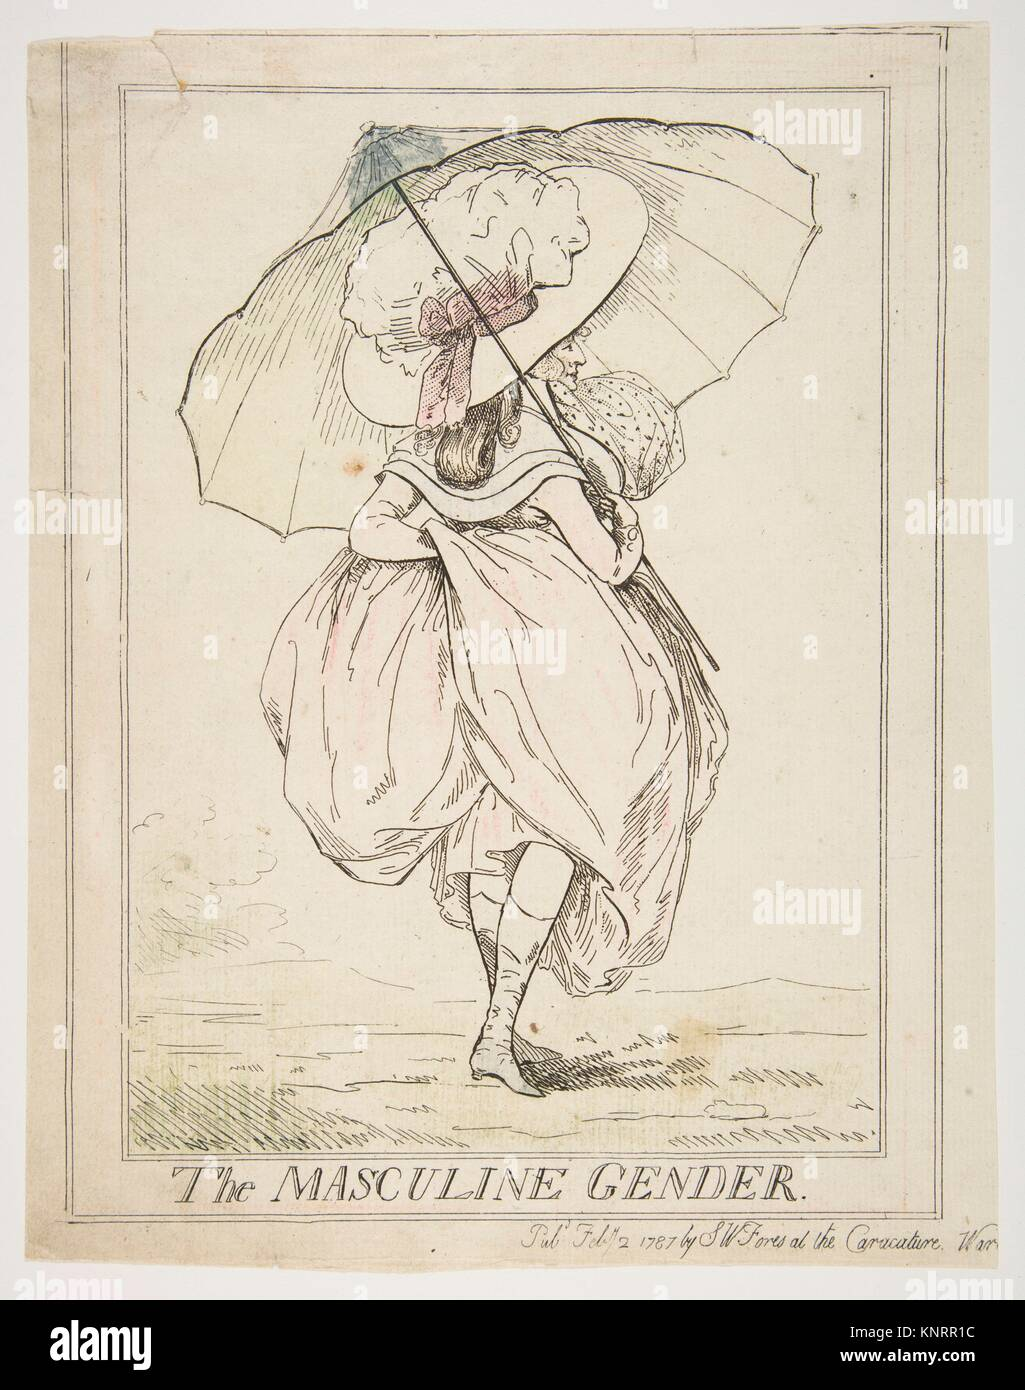 The Masculine Gender. Artist: Attributed to Henry Kingsbury (British, active ca. 1775-98); Publisher: Samuel William - Stock Image